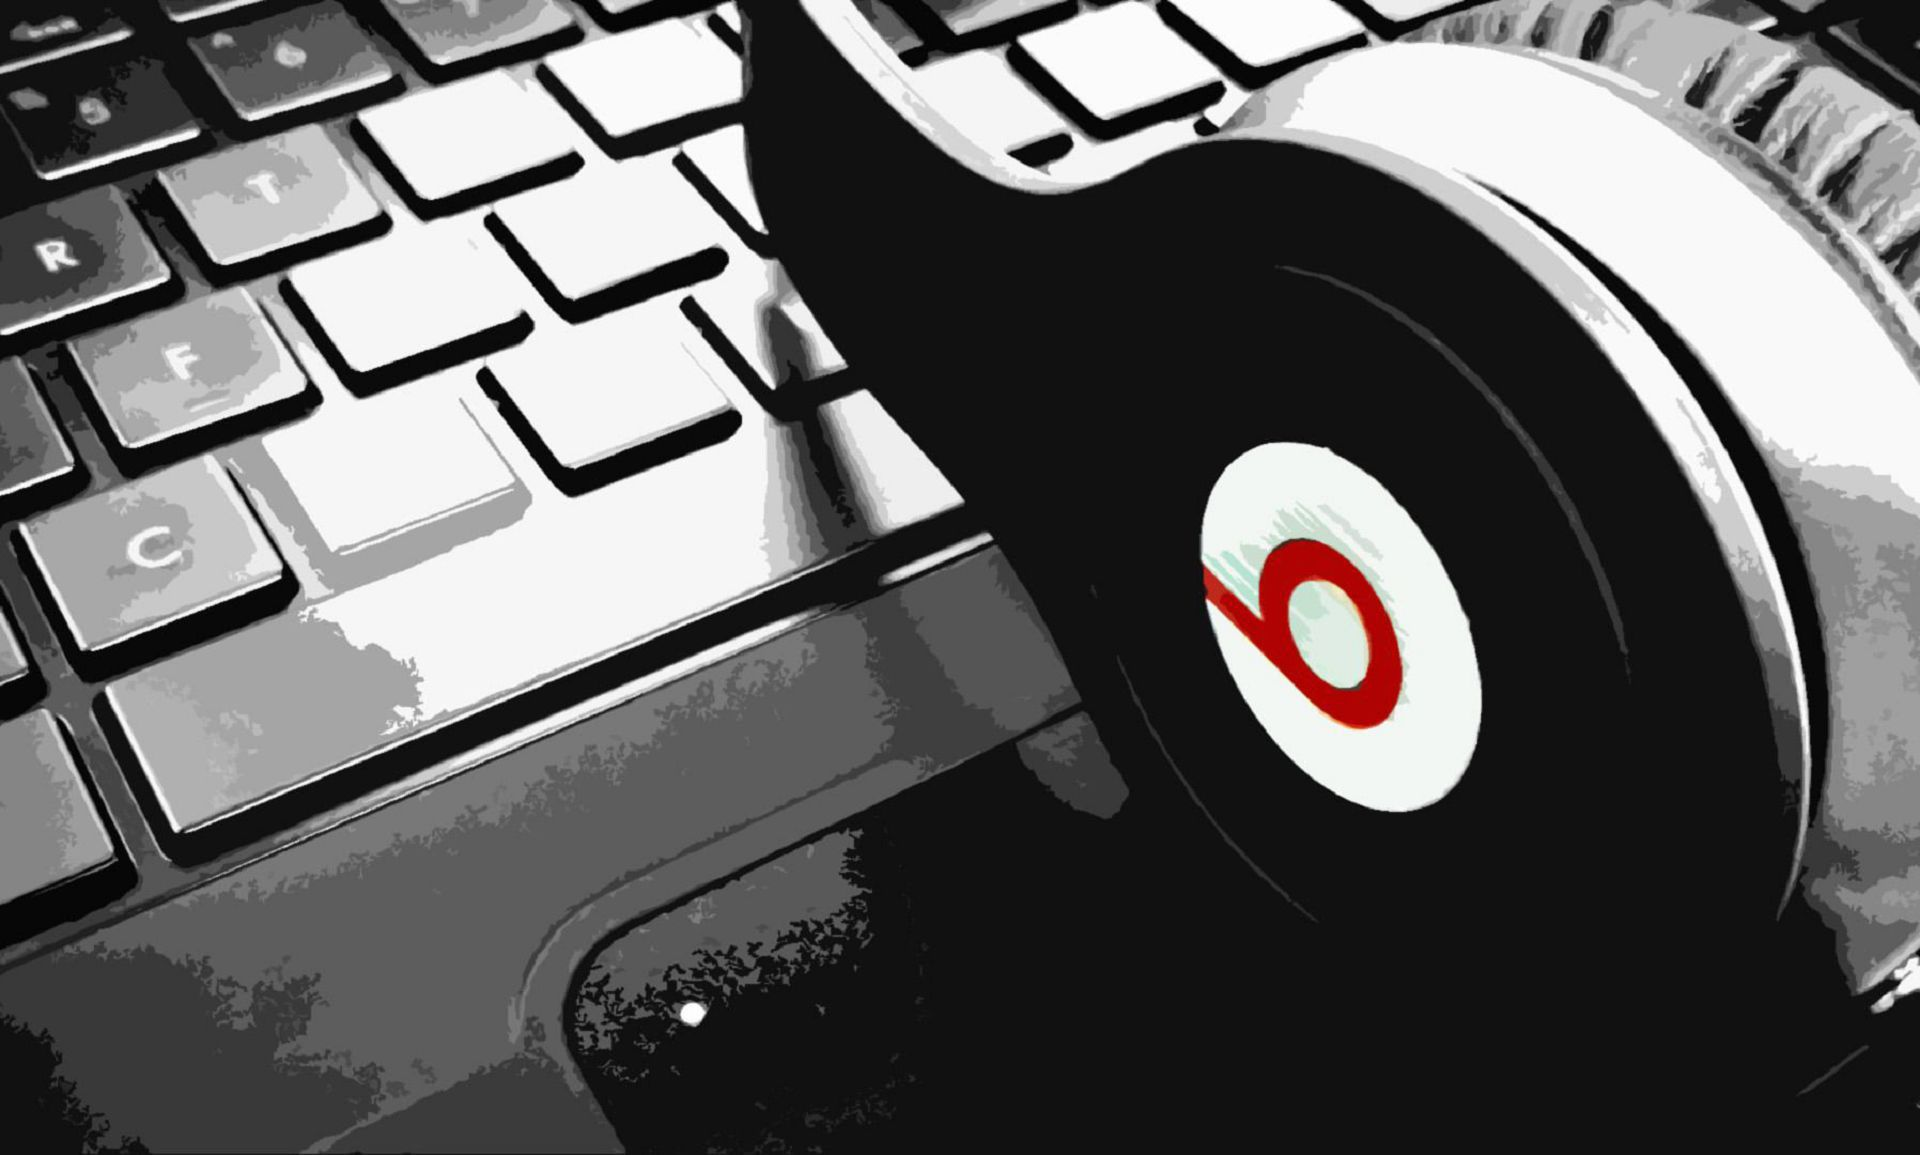 Beats By Dre Wallpaper Pack